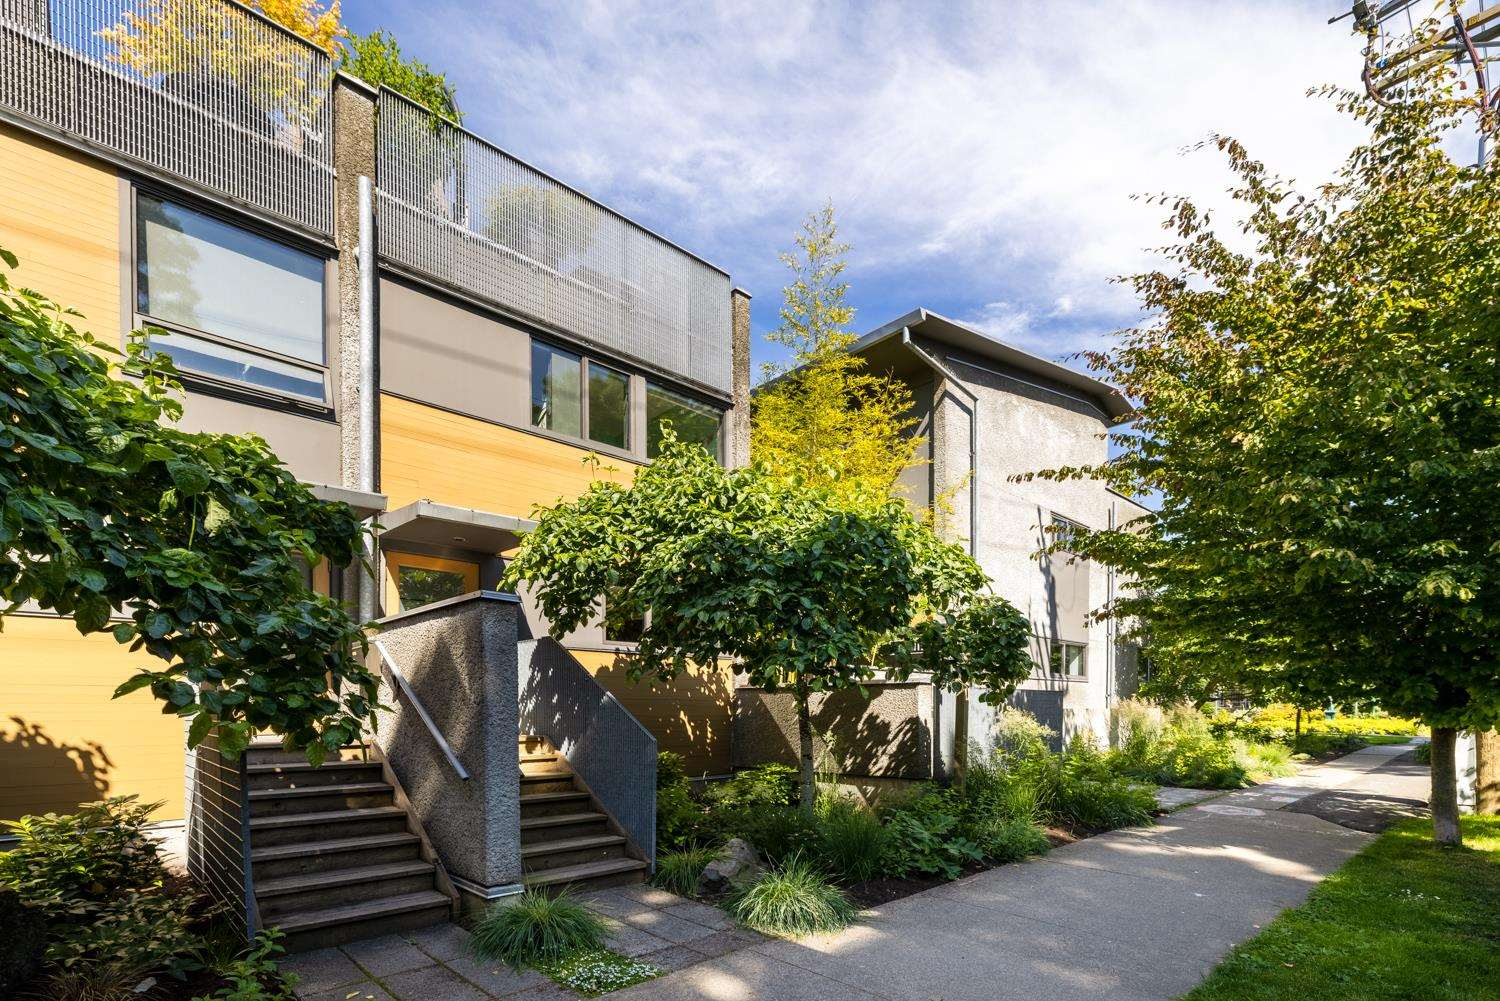 3119 PRINCE EDWARD STREET - Mount Pleasant VE Townhouse for sale, 2 Bedrooms (R2598649) - #1